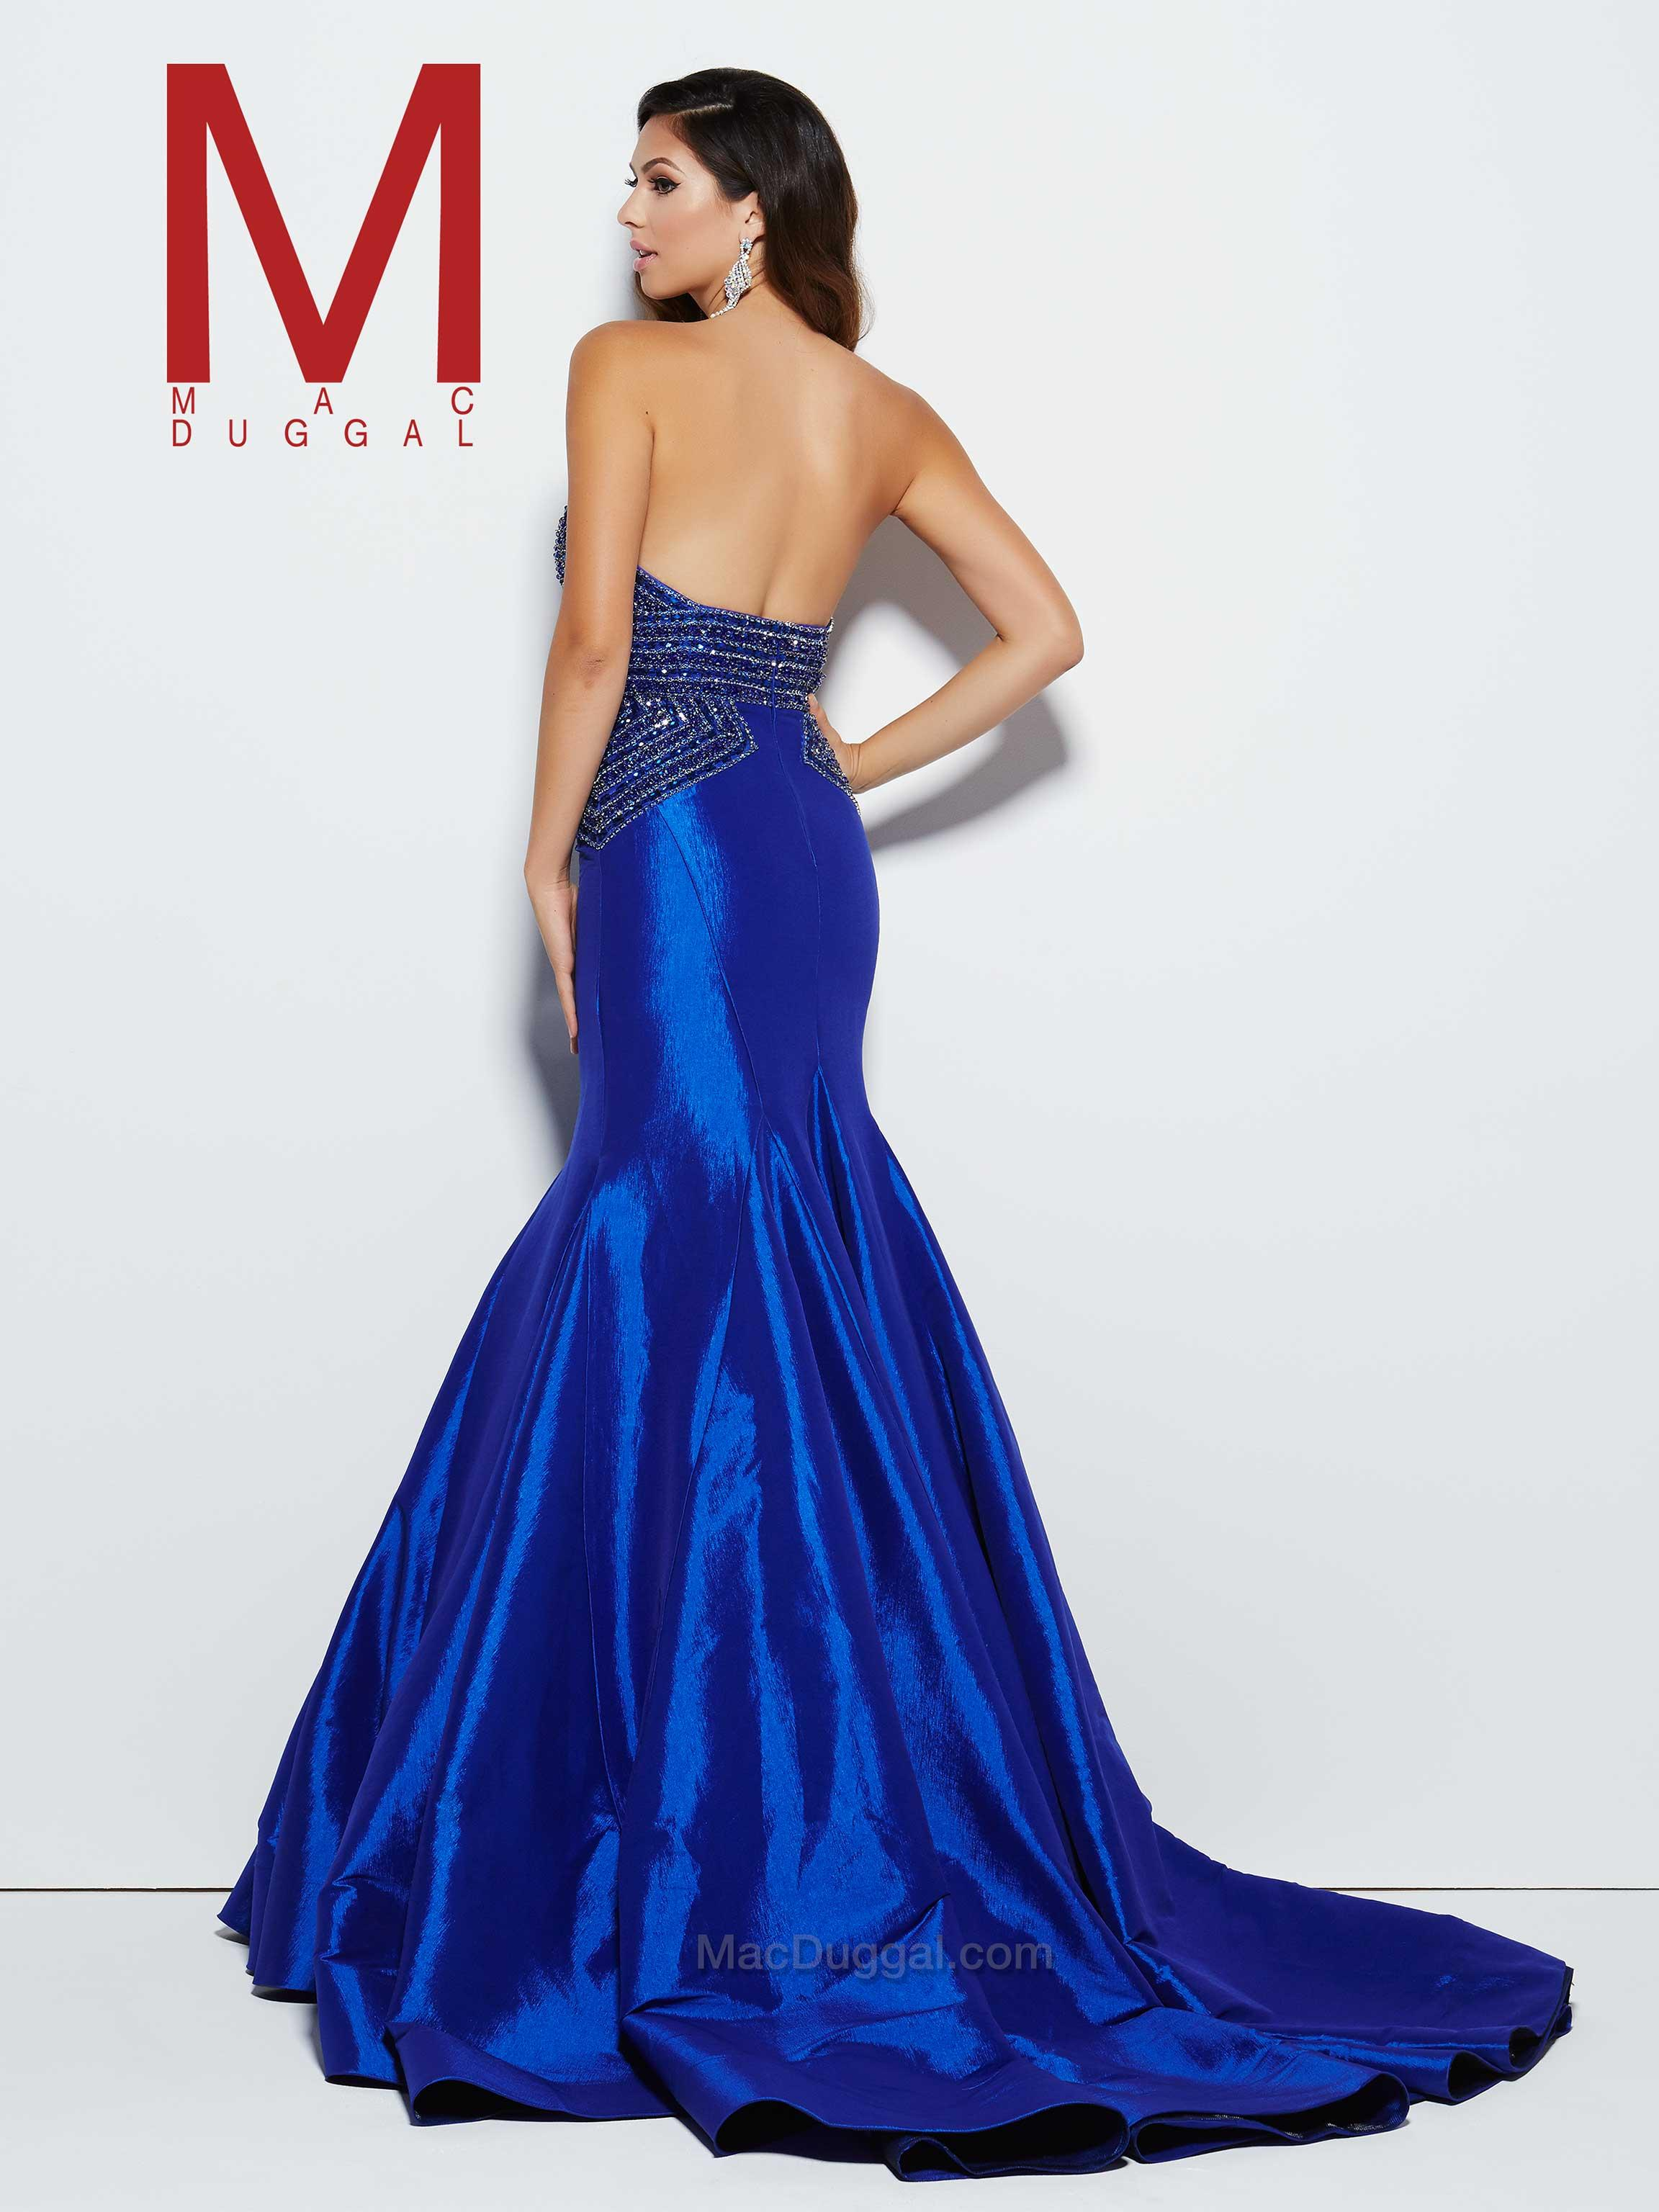 sweeping electric blue gown - 736×929